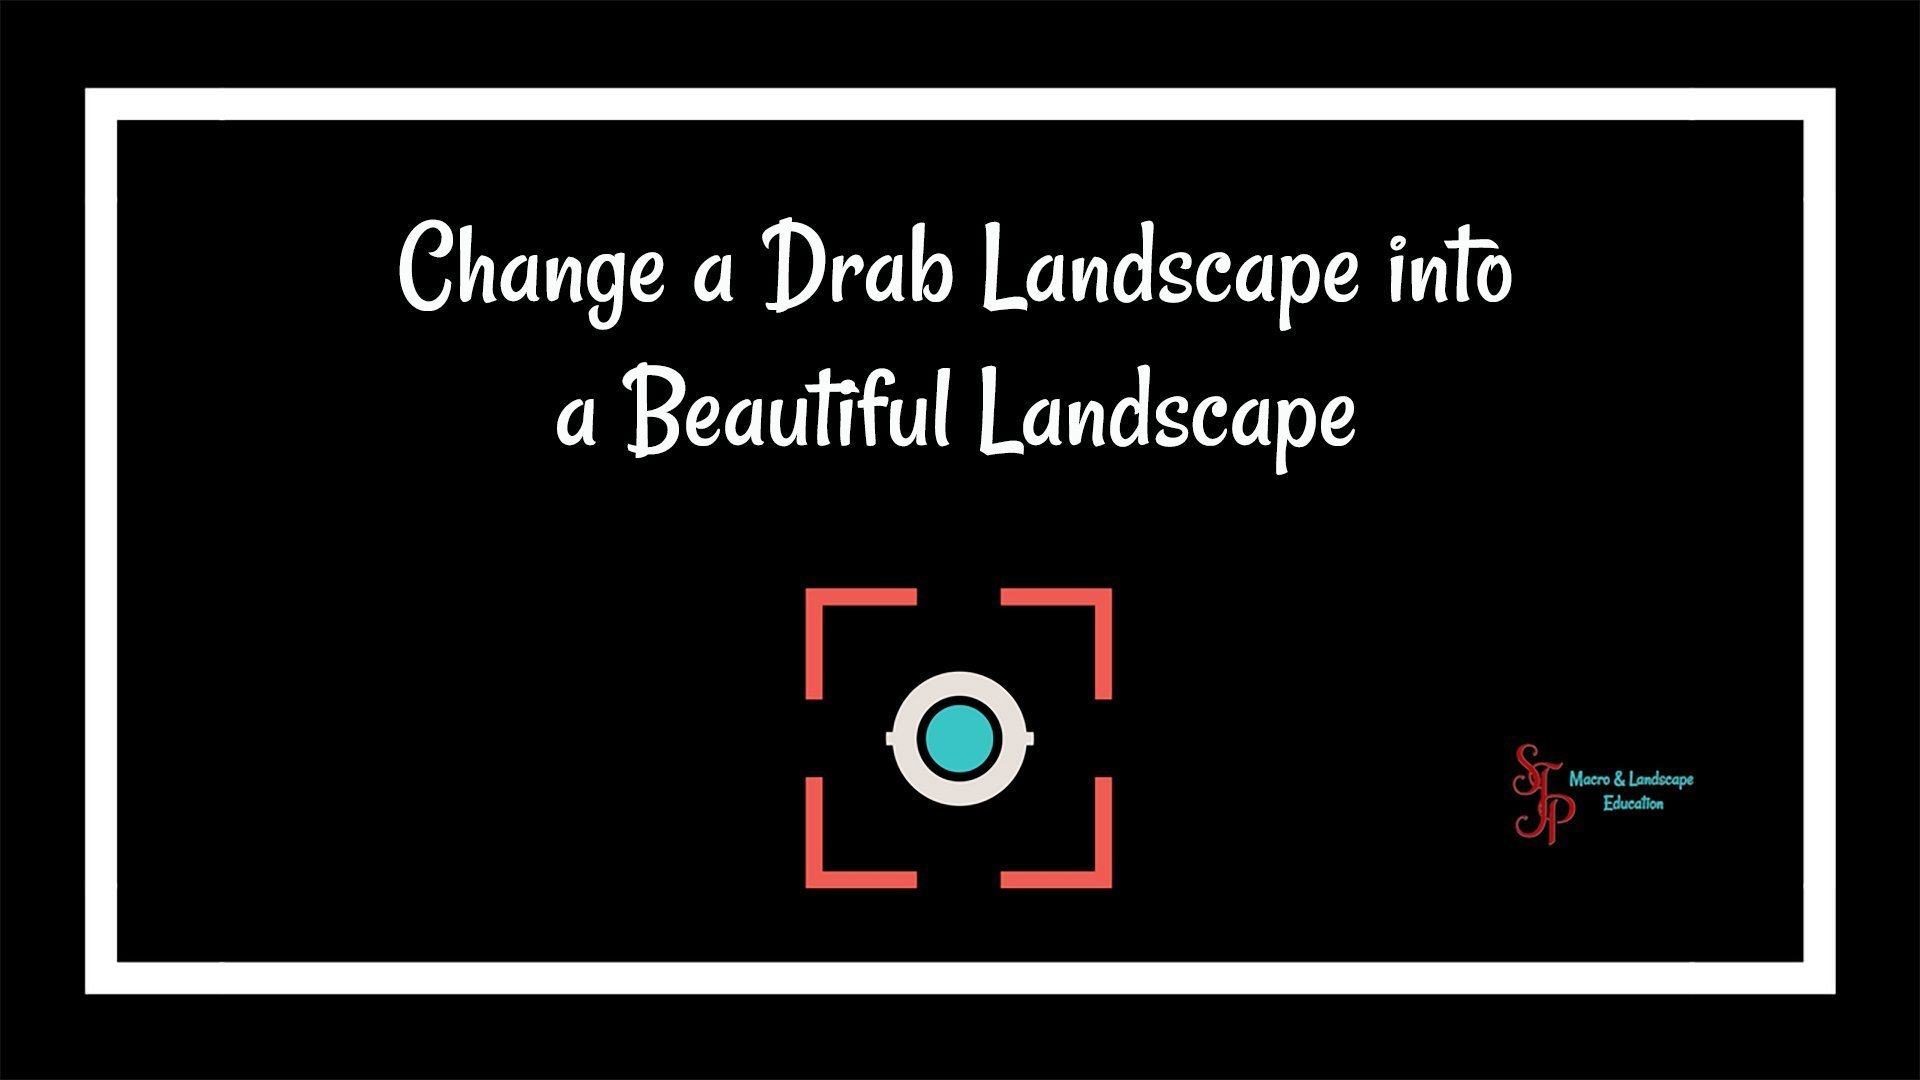 Change a Drab Landscape into a Beautiful Landscape